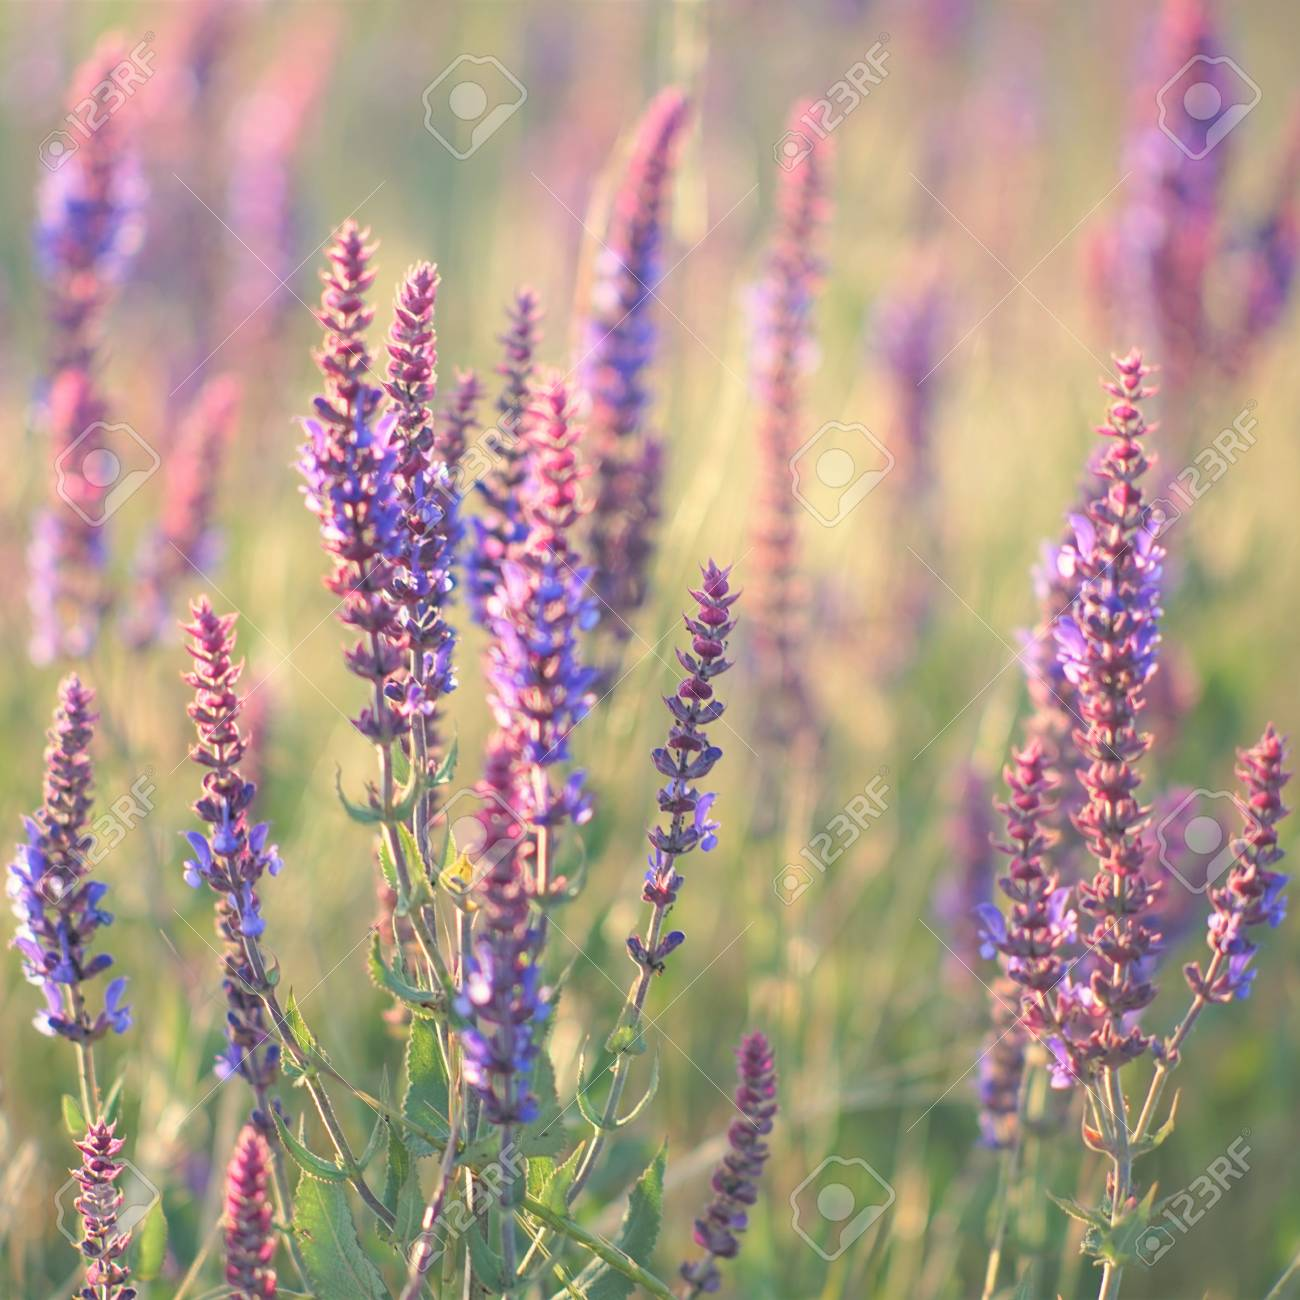 Lavender At Sunset Field Of Purple Flowers Stock Photo Picture And Royalty Free Image Image 111466384